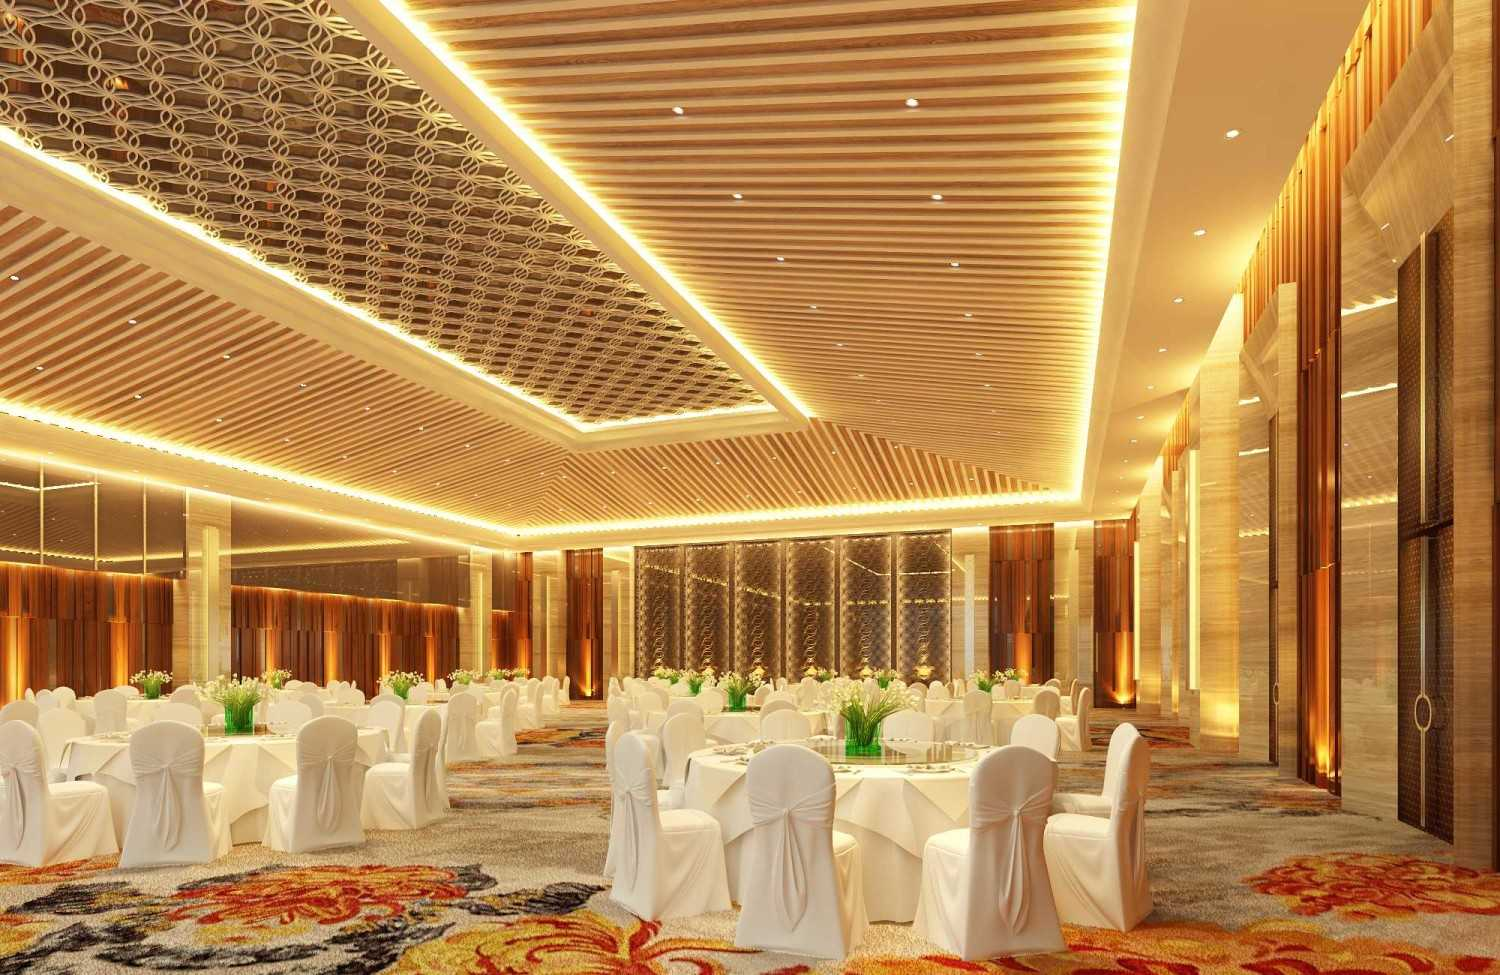 Harold Tutupoly Best Western Premier Batam Batam City, Riau Islands, Indonesia Batam City, Riau Islands, Indonesia 1St-Floor-Ballroom-Alt1 Modern 34519